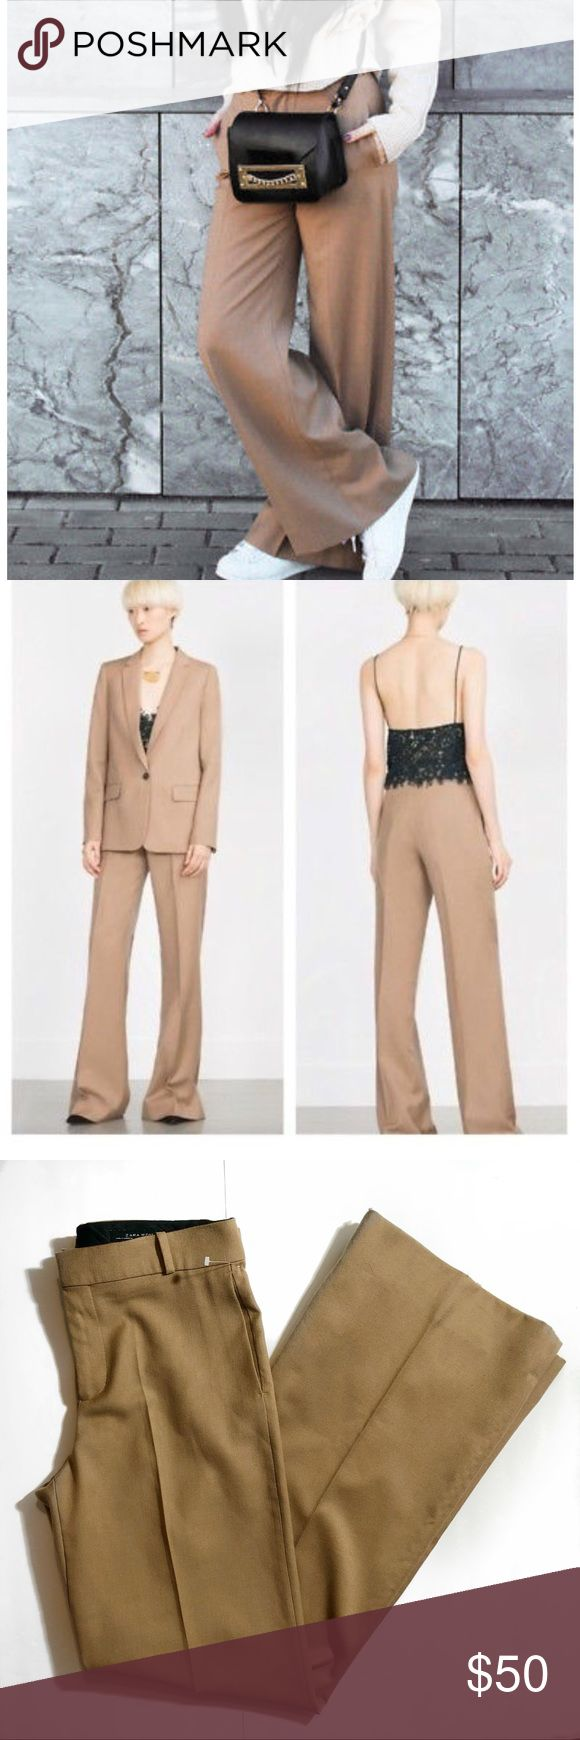 "NWOT Zara Woman Camel Wide Leg Trouser Pants New without tags Zara Woman Camel Wide Leg Trouser Pants. Size medium. No flaws. Measures 17"" across laying flat. 11"" rise. 36"" inseam. #139 No trades, no try ons, no holds. Bundle your likes for a private discount, and save on shipping! Zara Pants Wide Leg"